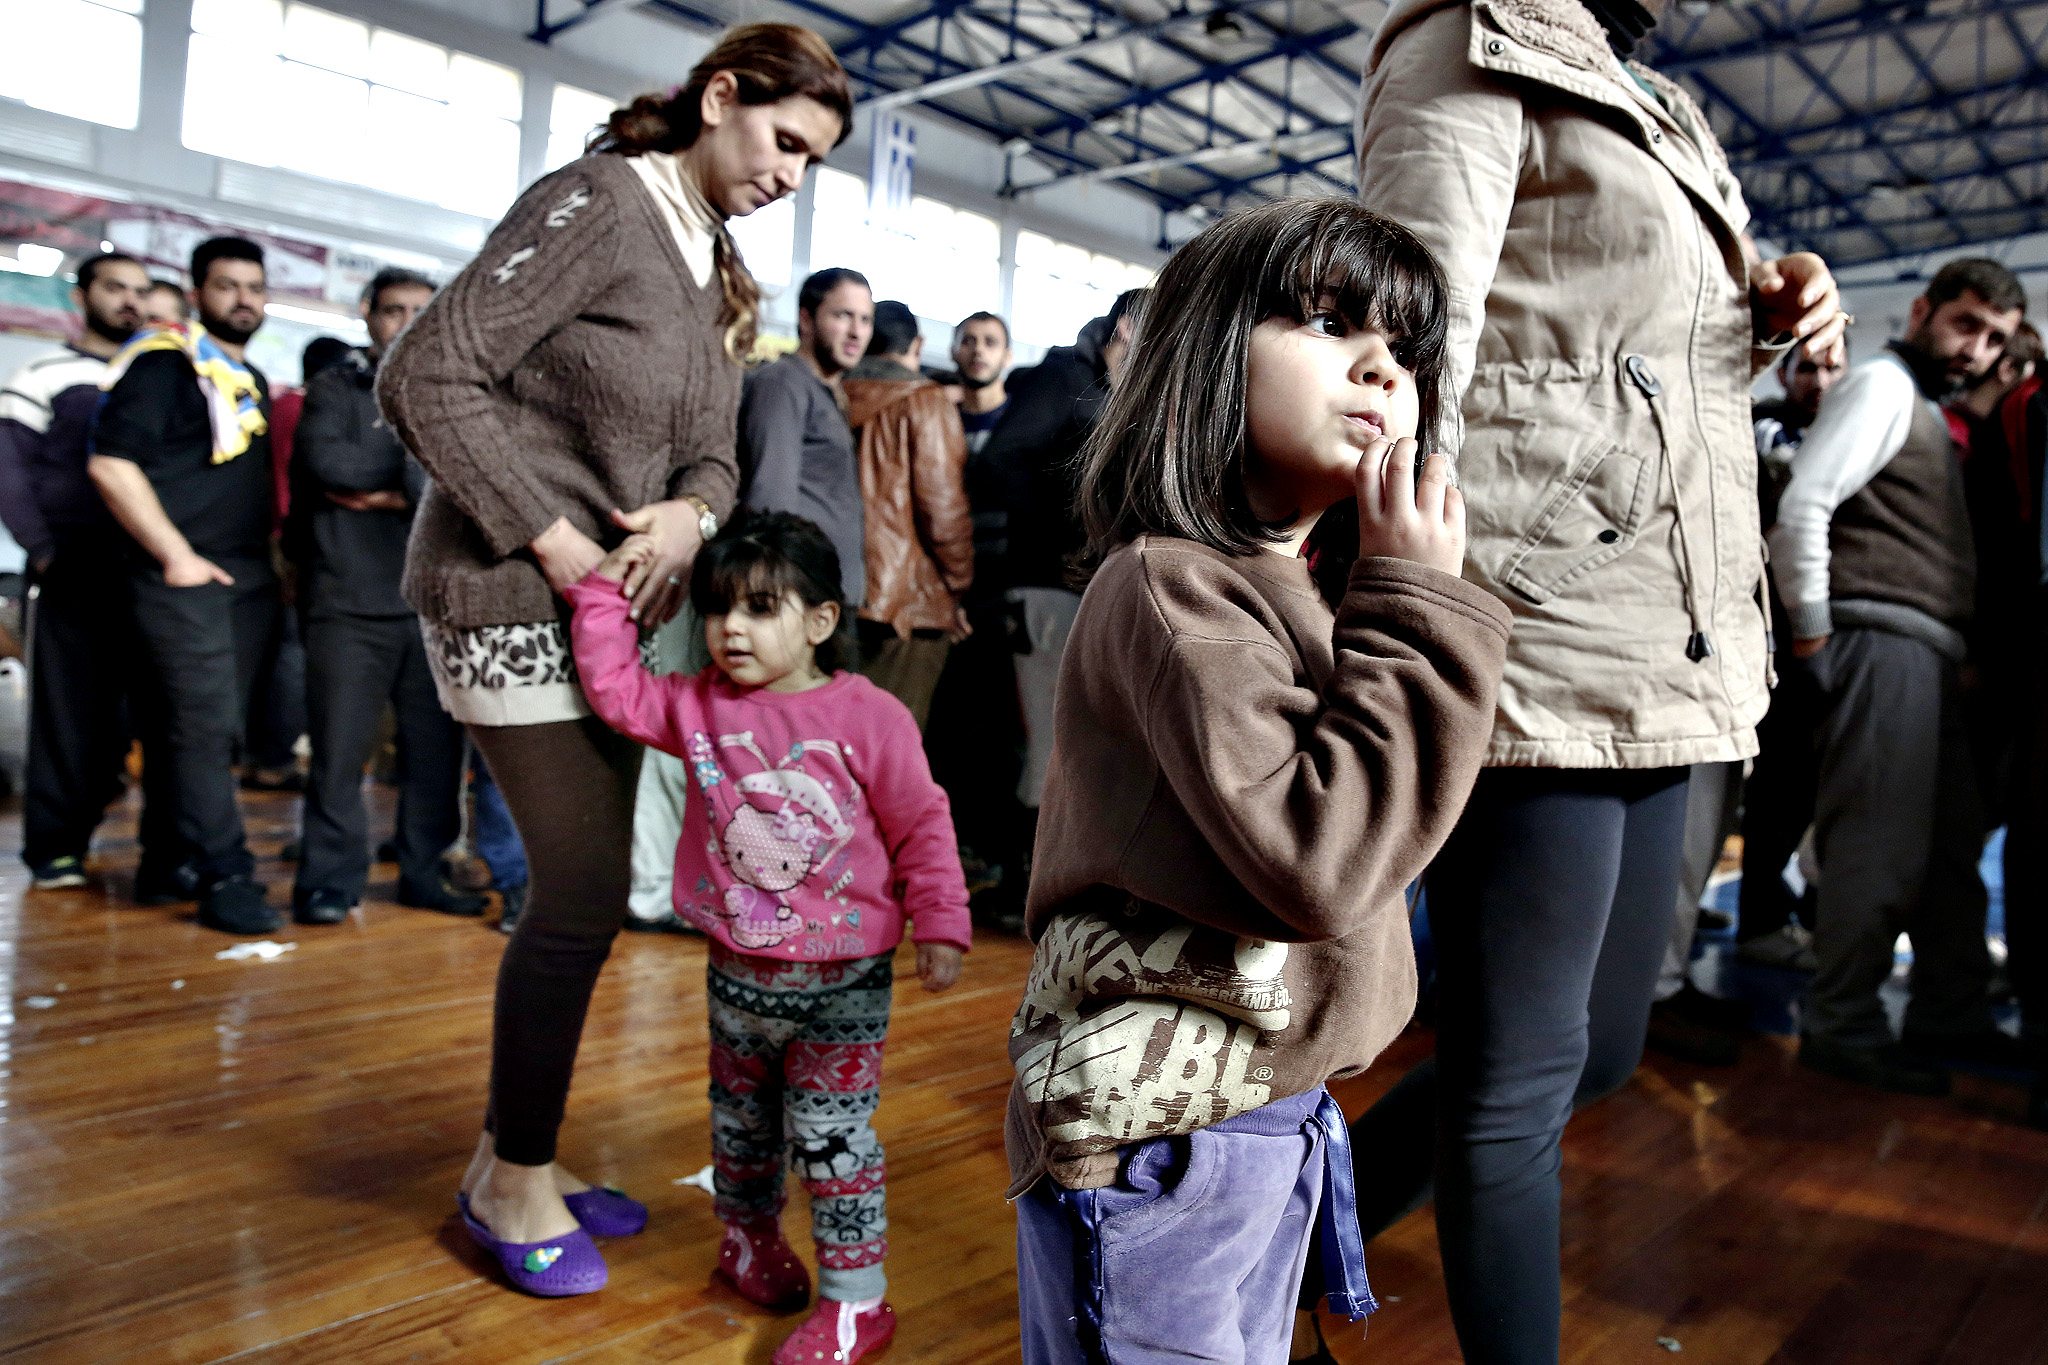 Immigrants who arrived on a cargo ship from Turkey queue for meals in a basketball arena where they have been given temporary shelter in the town of Ierapetra, on the southern Greek island of Crete on Friday, Nov. 28, 2014. Nearly 600 men, women and children, mostly refugees from Syria, have been temporarily put up in the southern Cretan town of Ierapetra, where they arrived in a crippled smuggling ship after more than a week at sea.